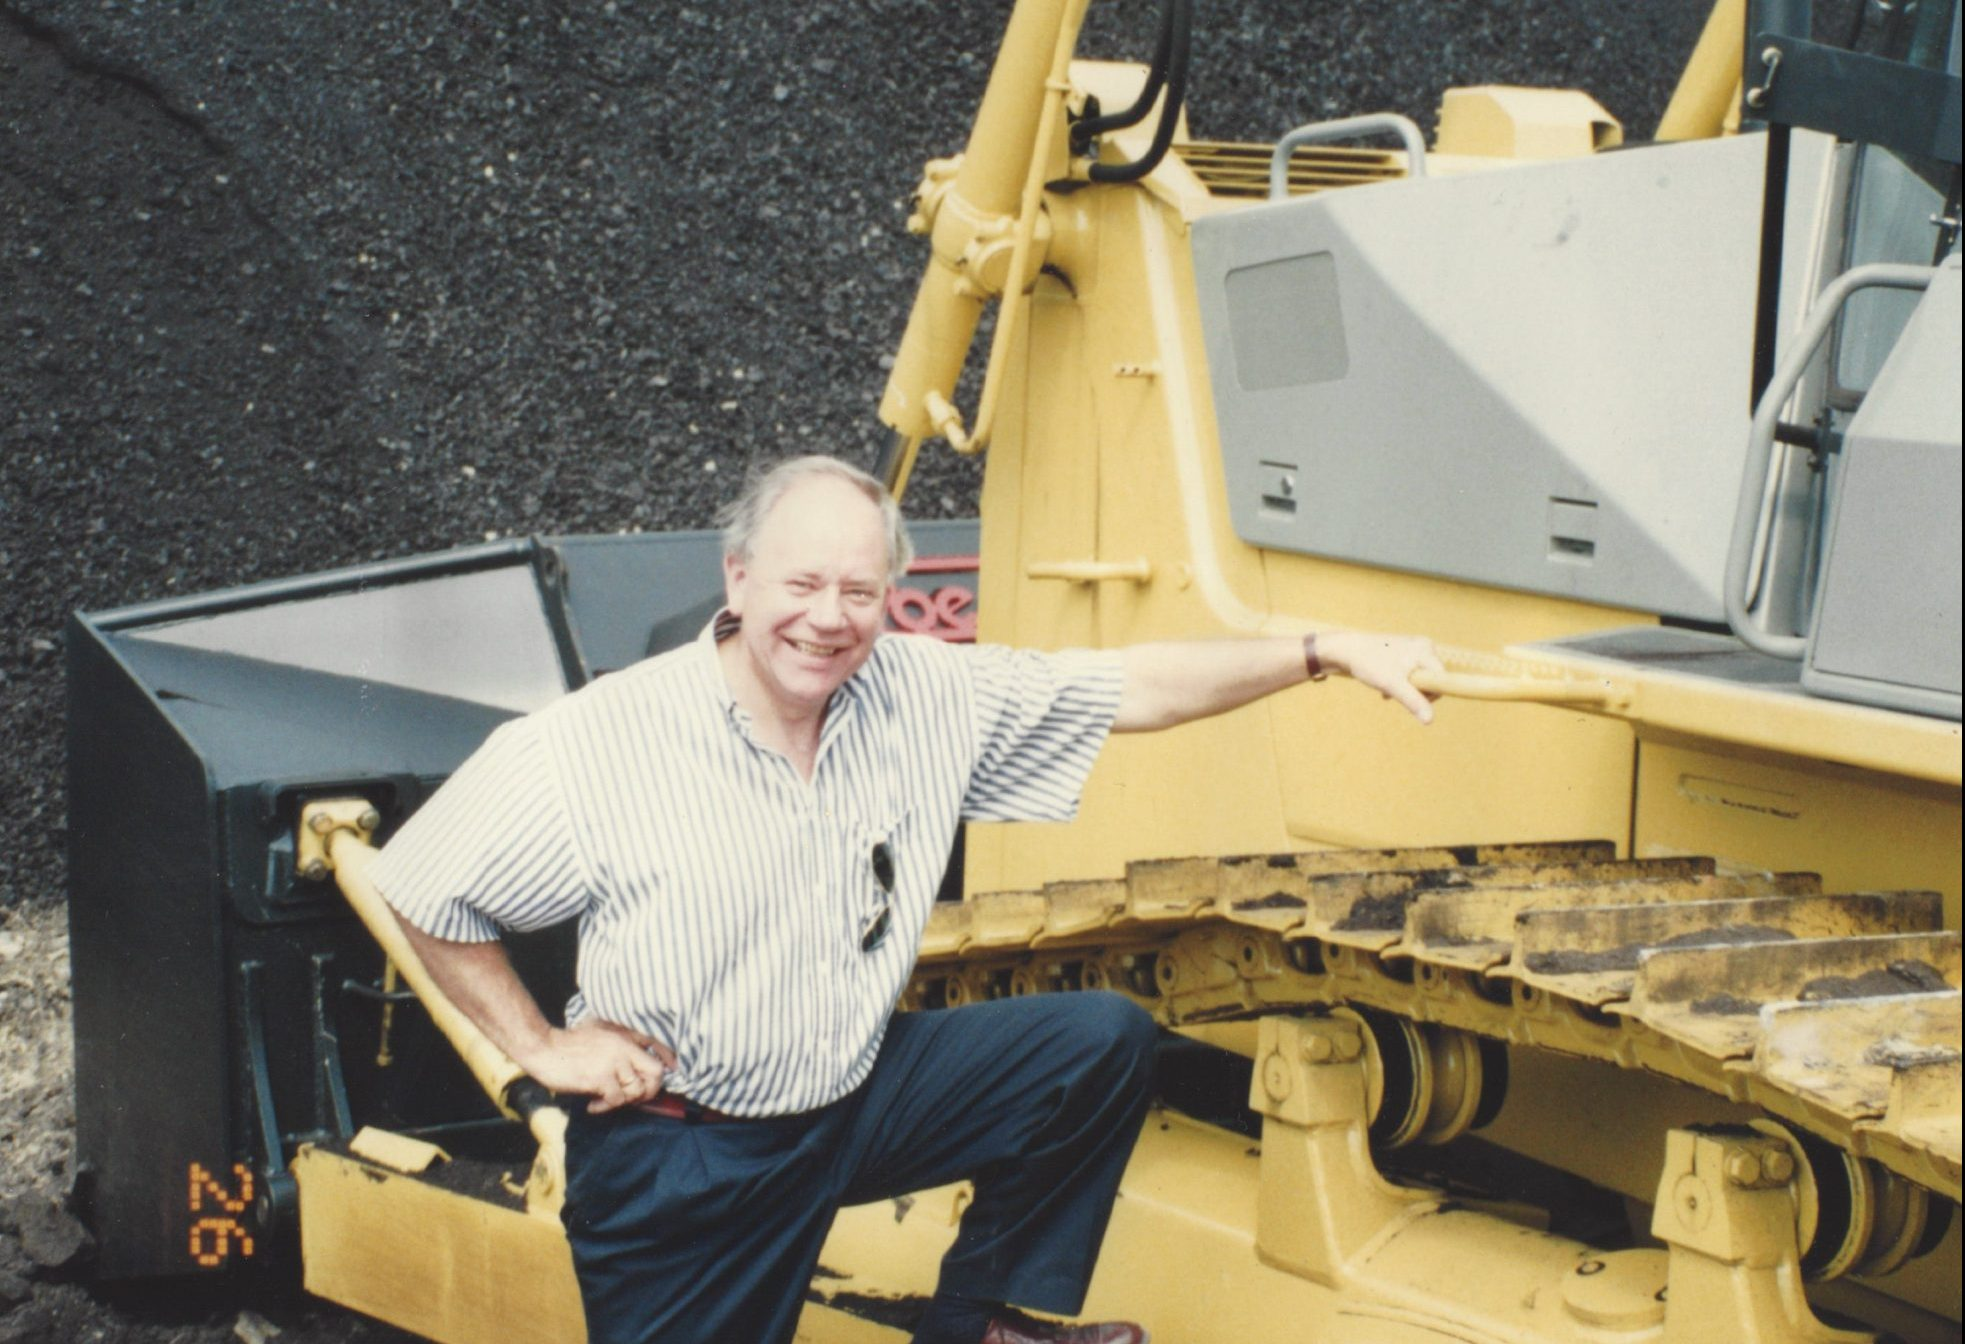 itc heavy equipment is a family business founded more than 30 years ago in the netherlands